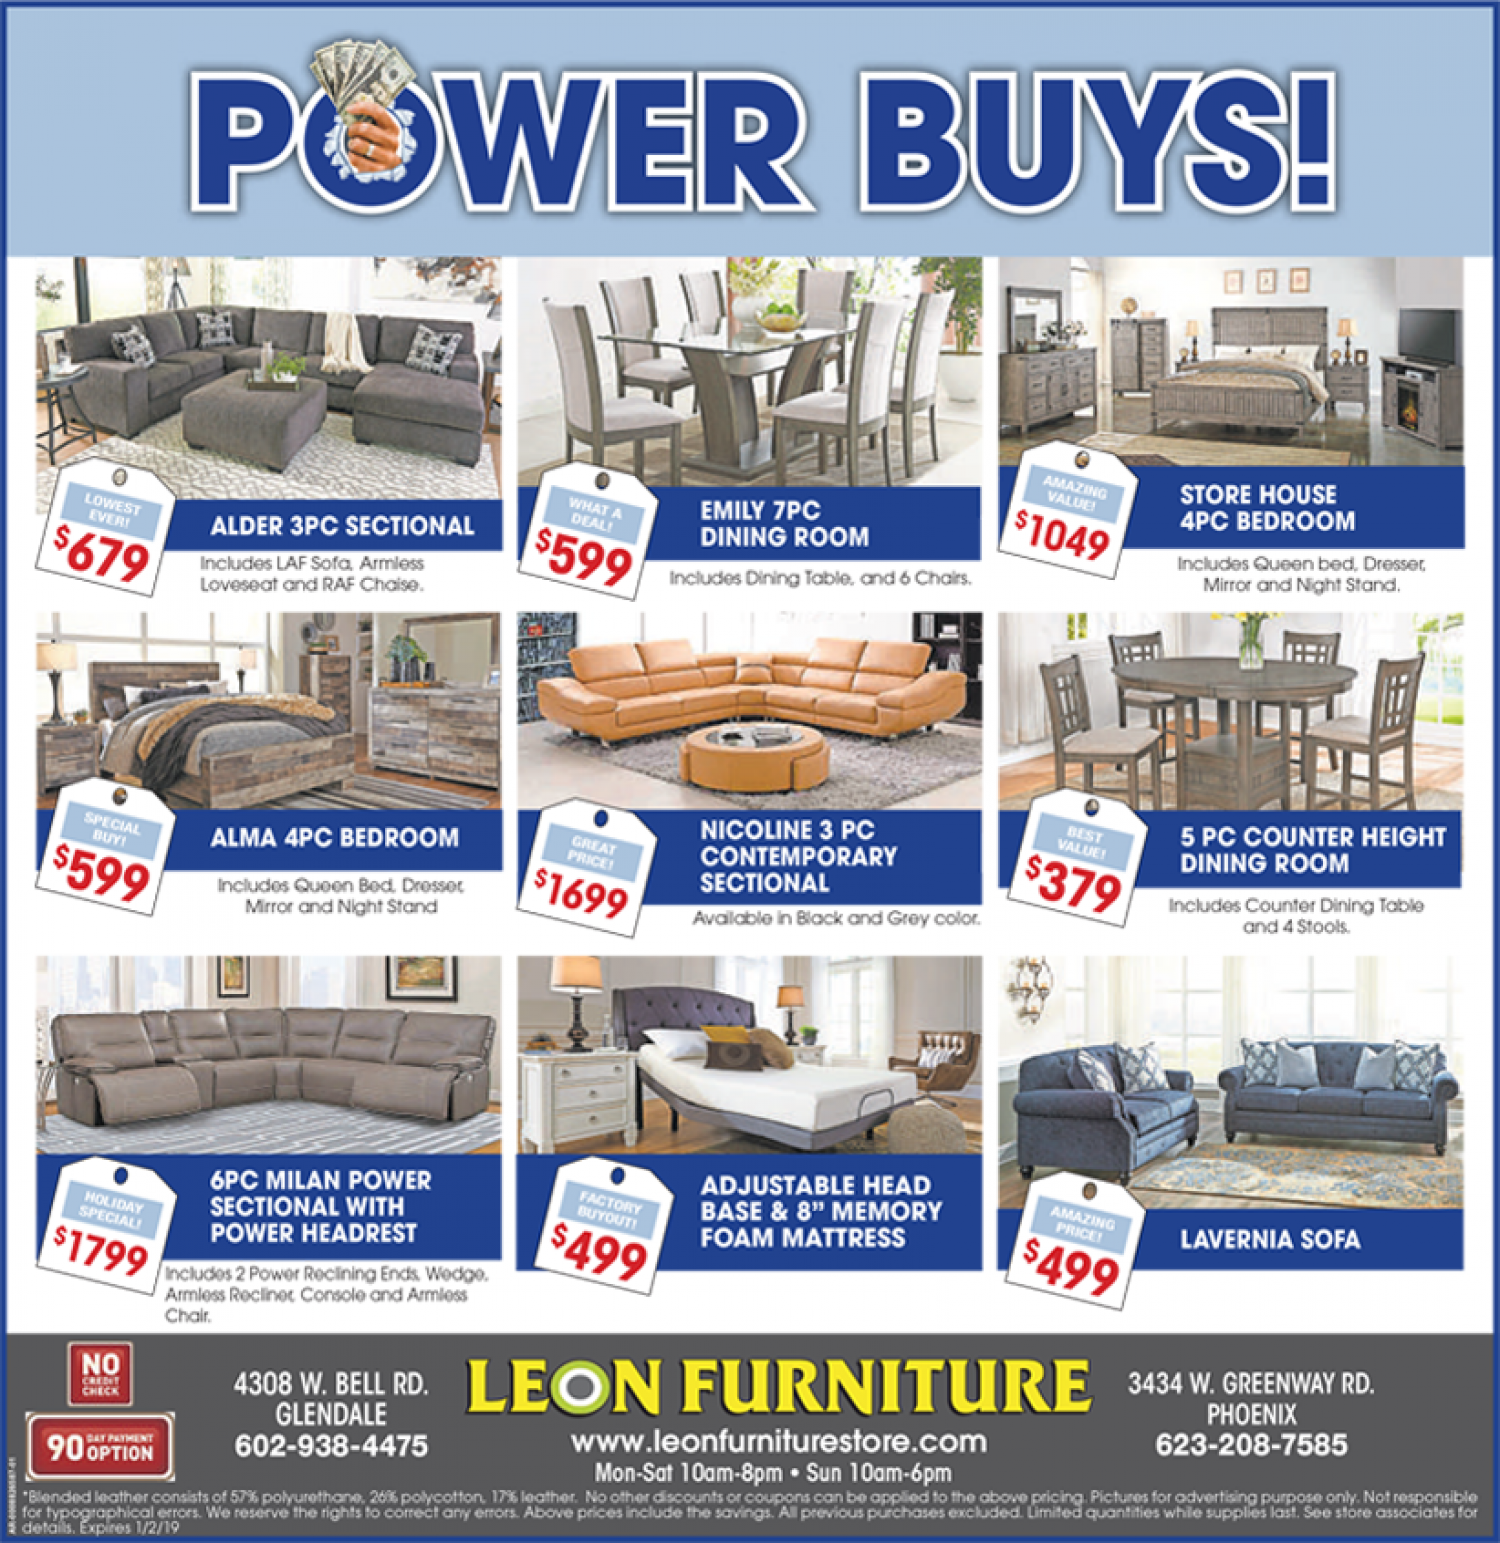 Weekly Furniture Sale at Leon Furniture Store Glendale  Infographic